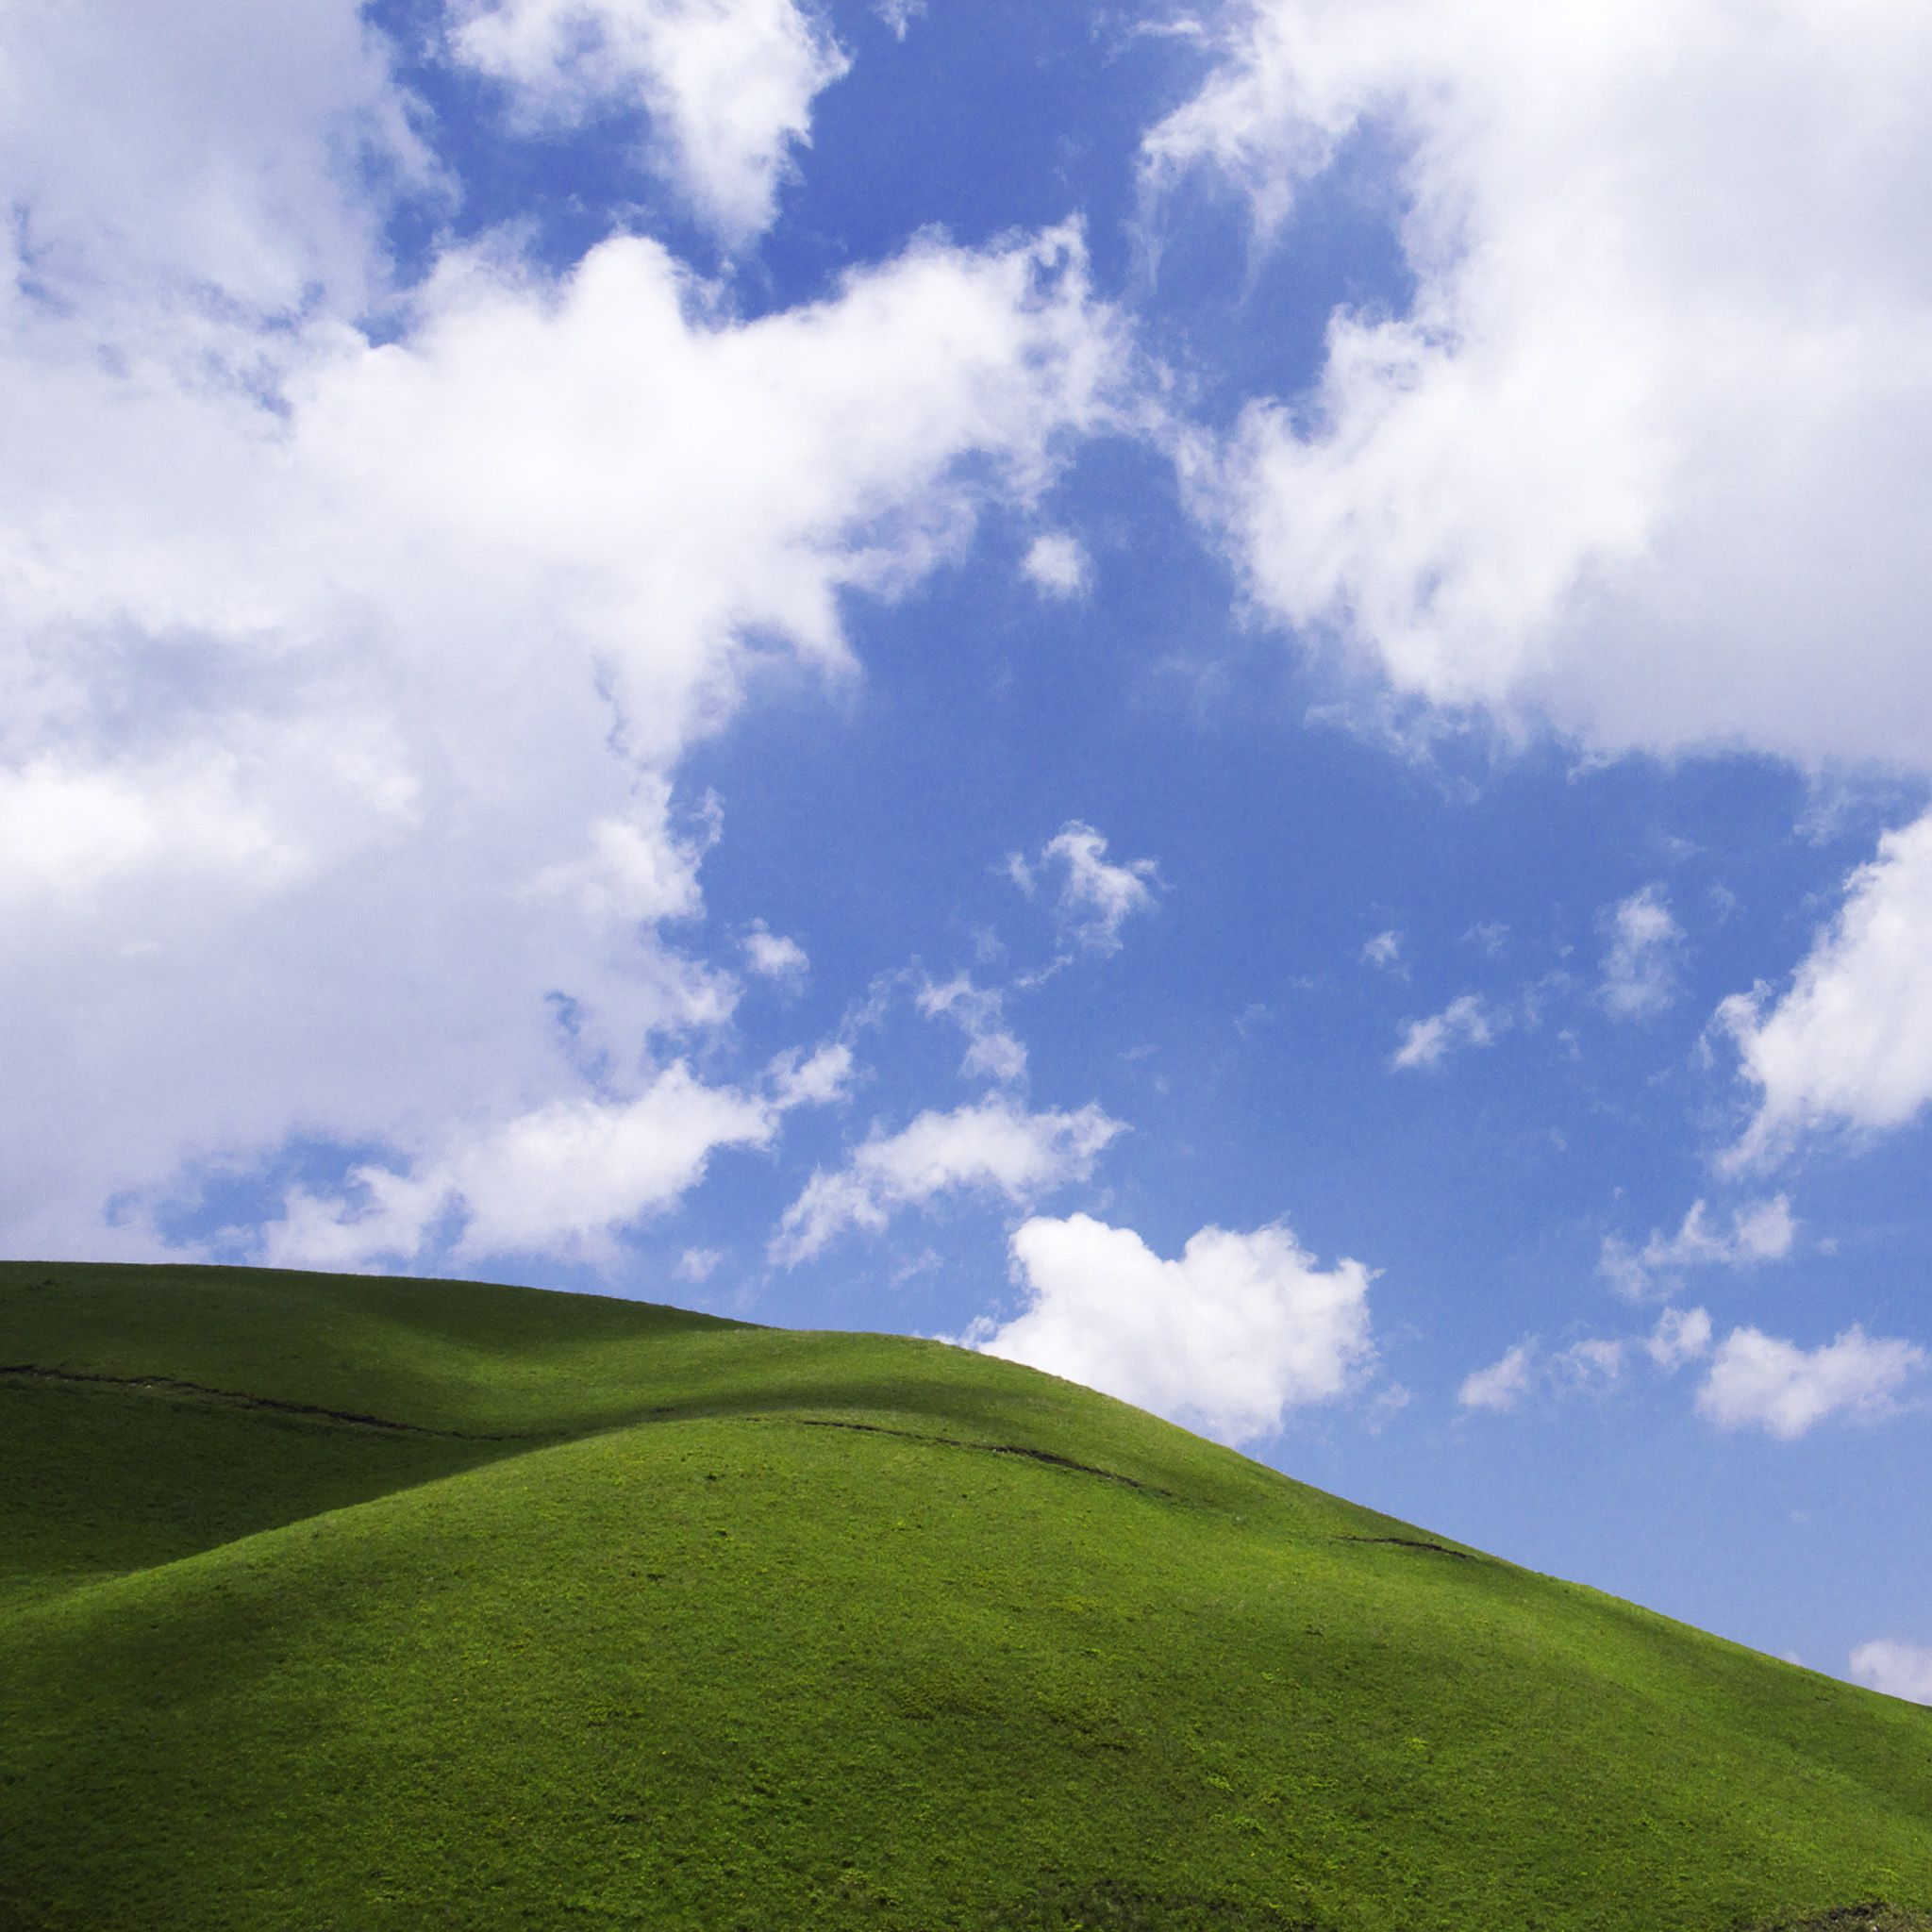 grass and sky backgrounds. Blue Sky And Green Grass IPhone Backgrounds Pinterest